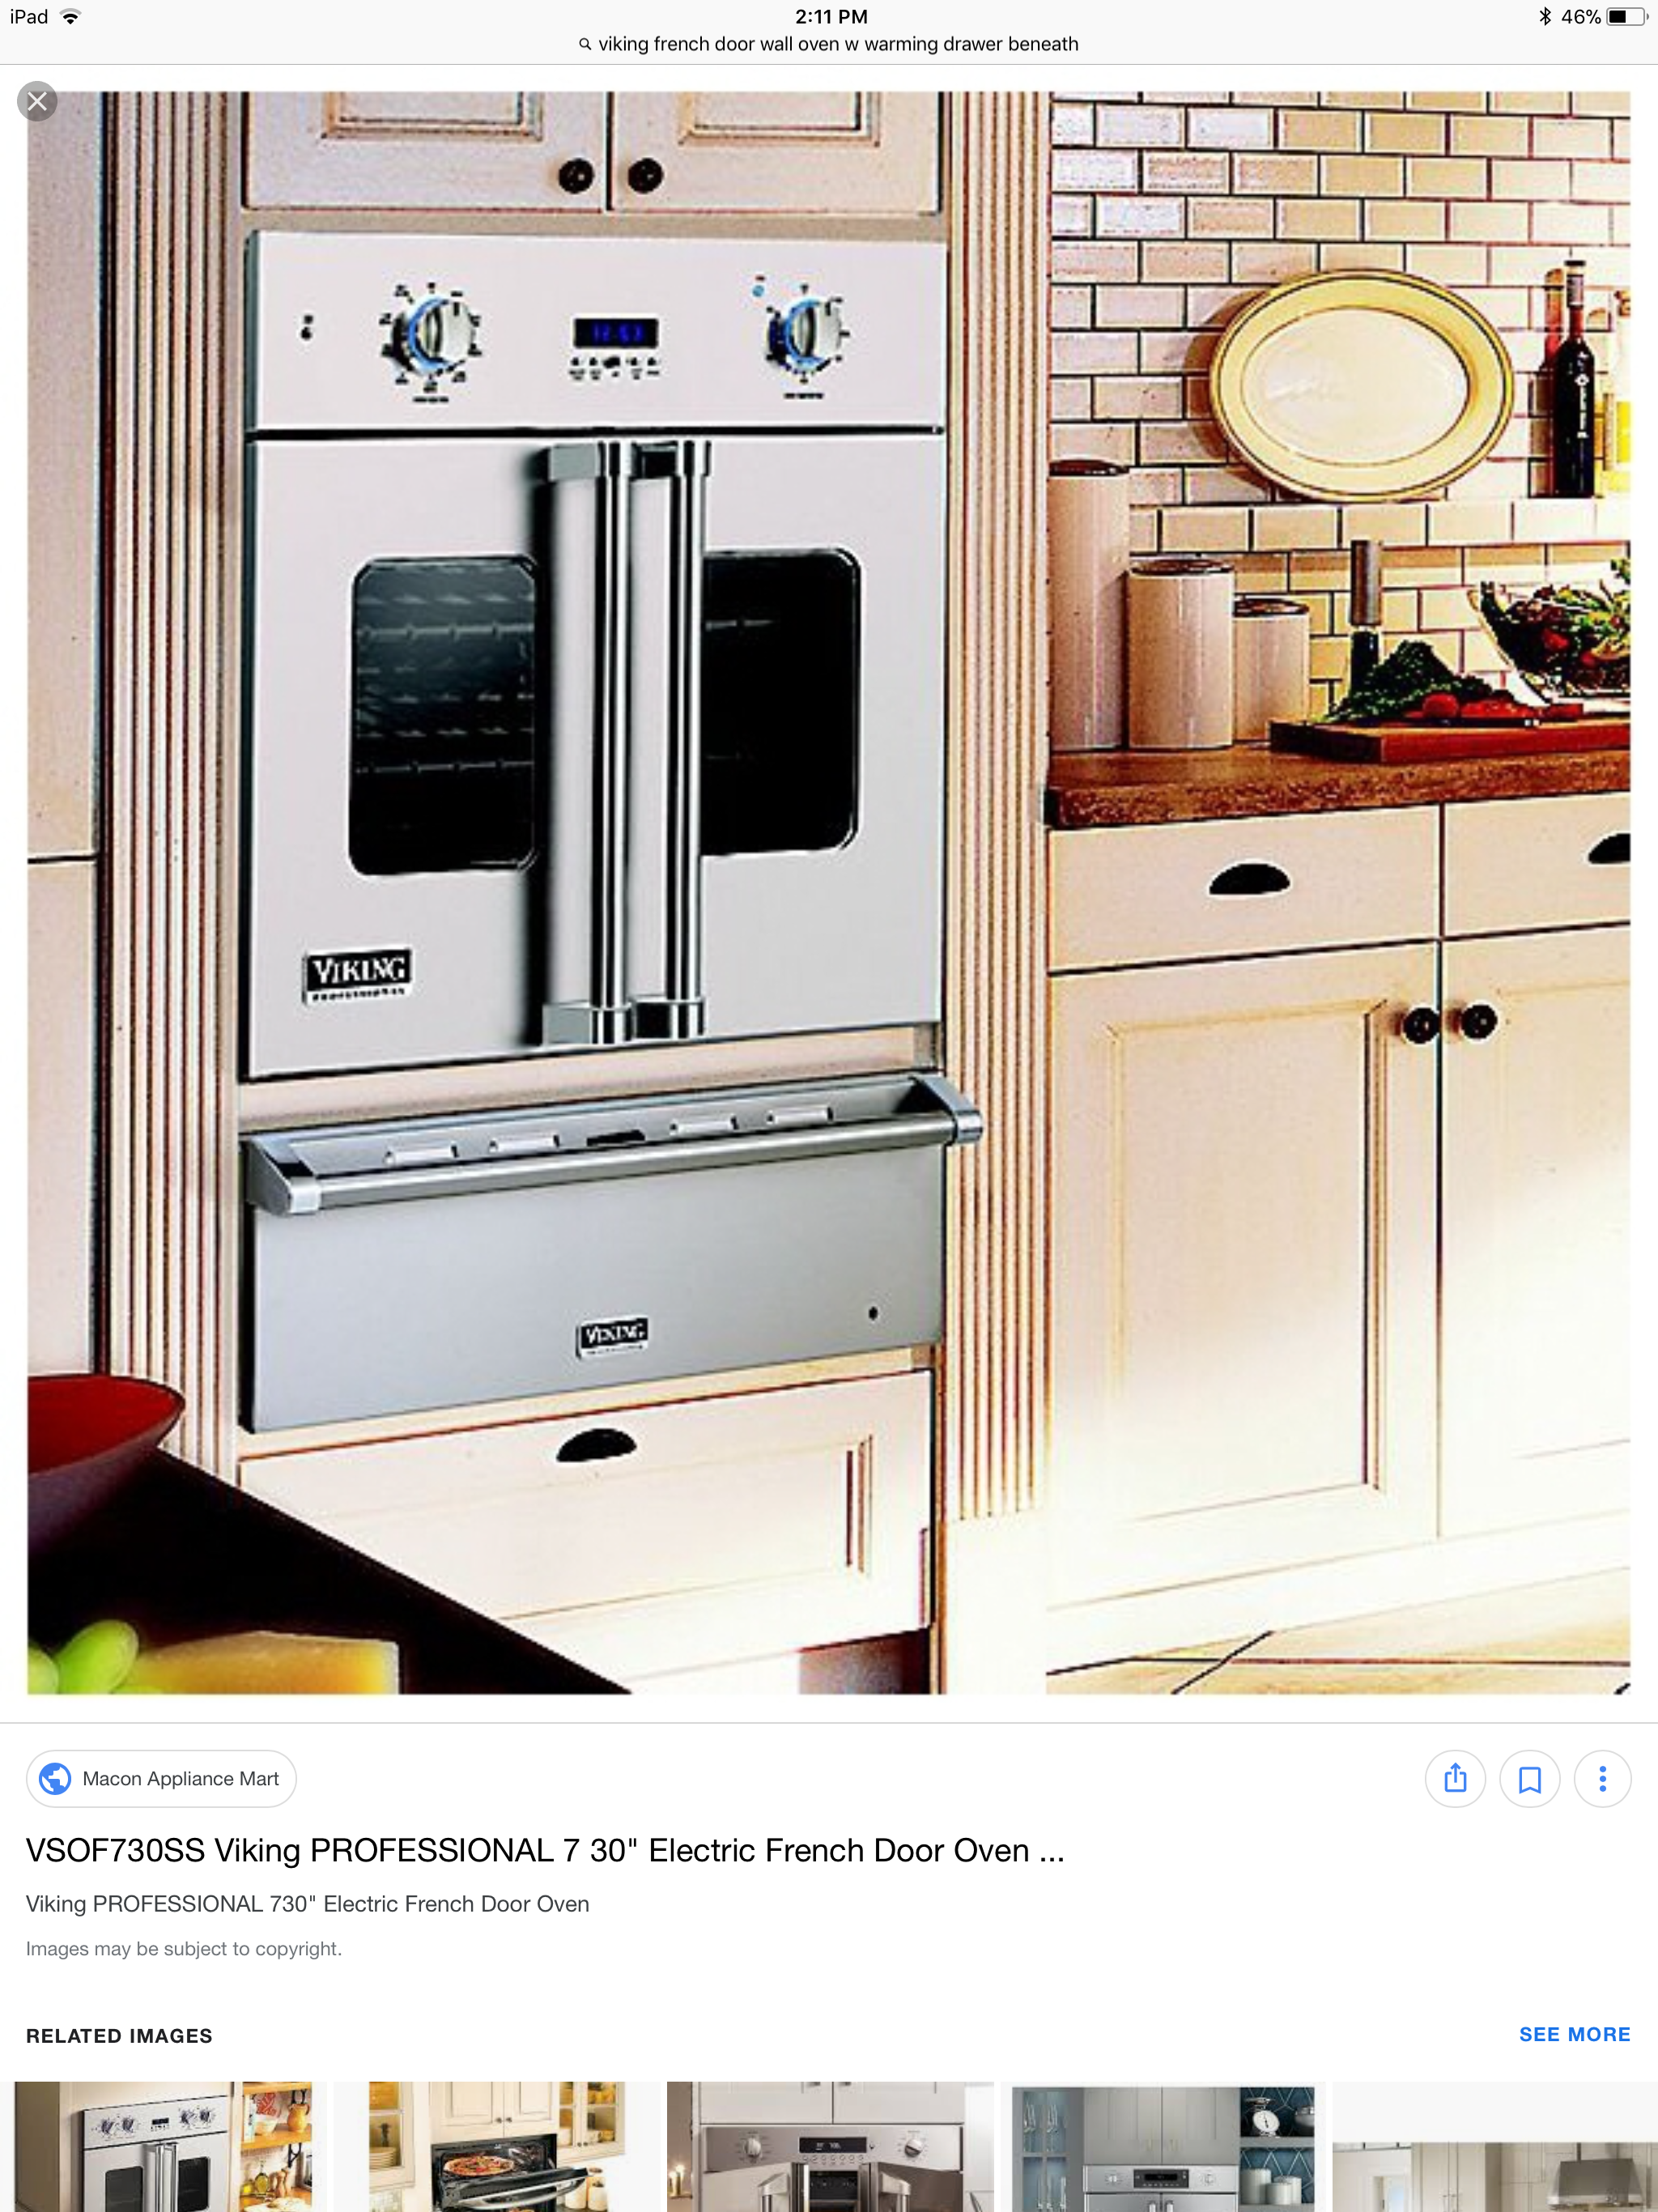 French Door Wall Oven W Warming Drawer